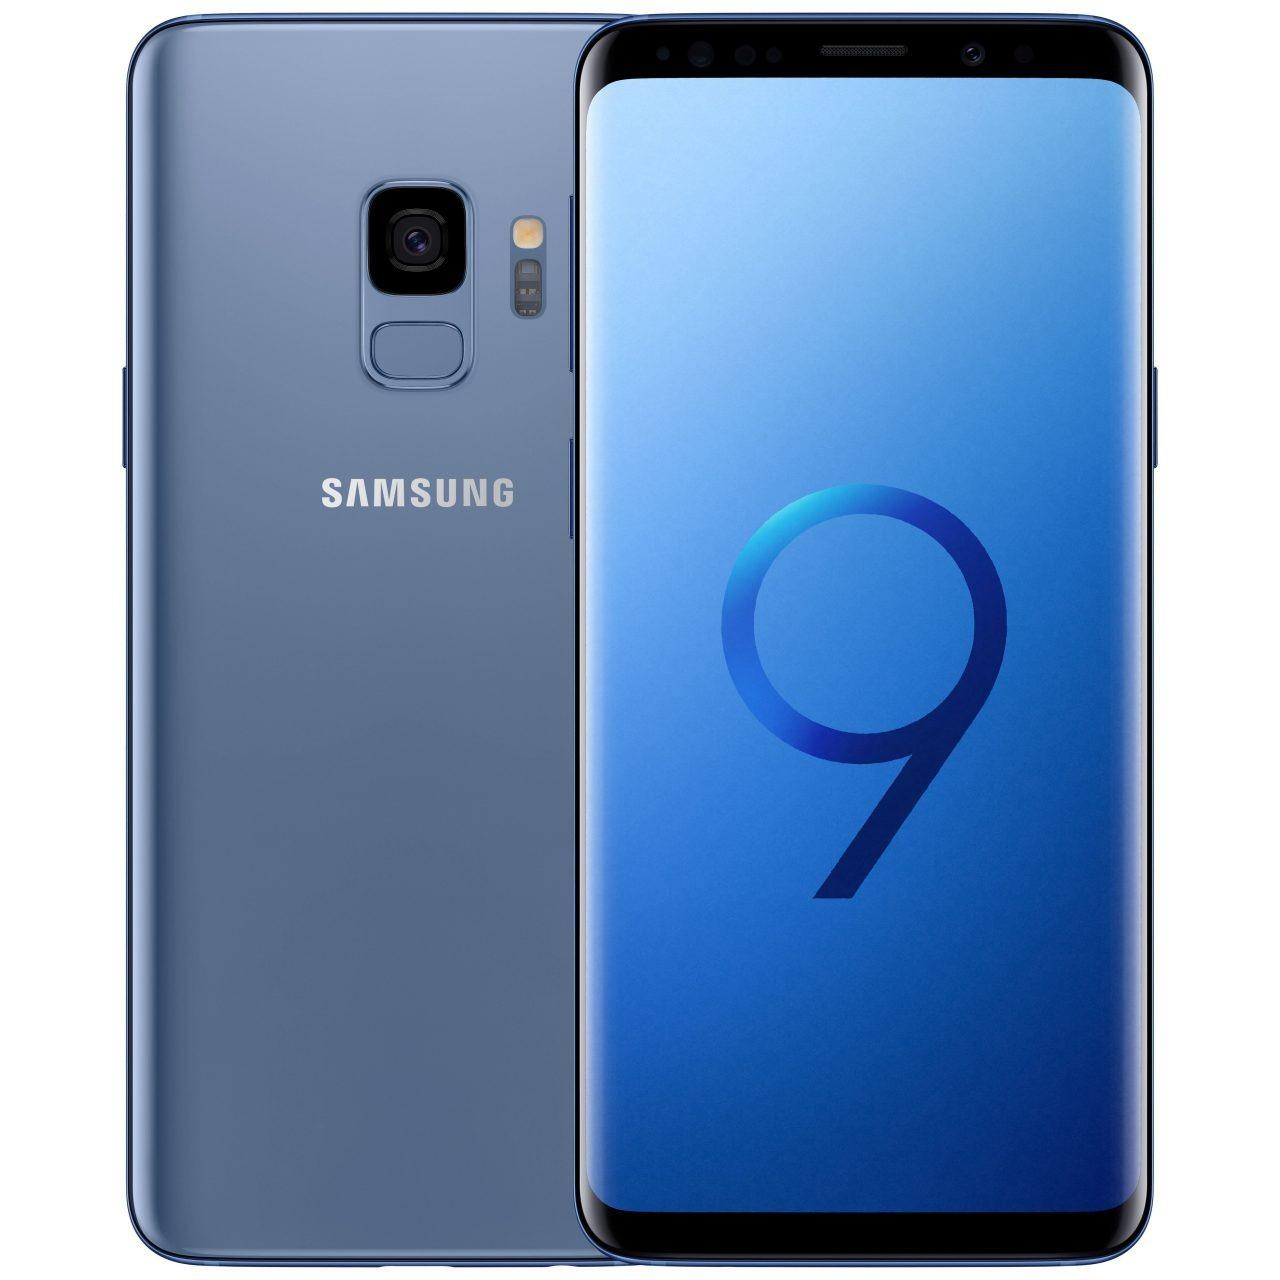 Samsung Galaxy S9 – 64GB